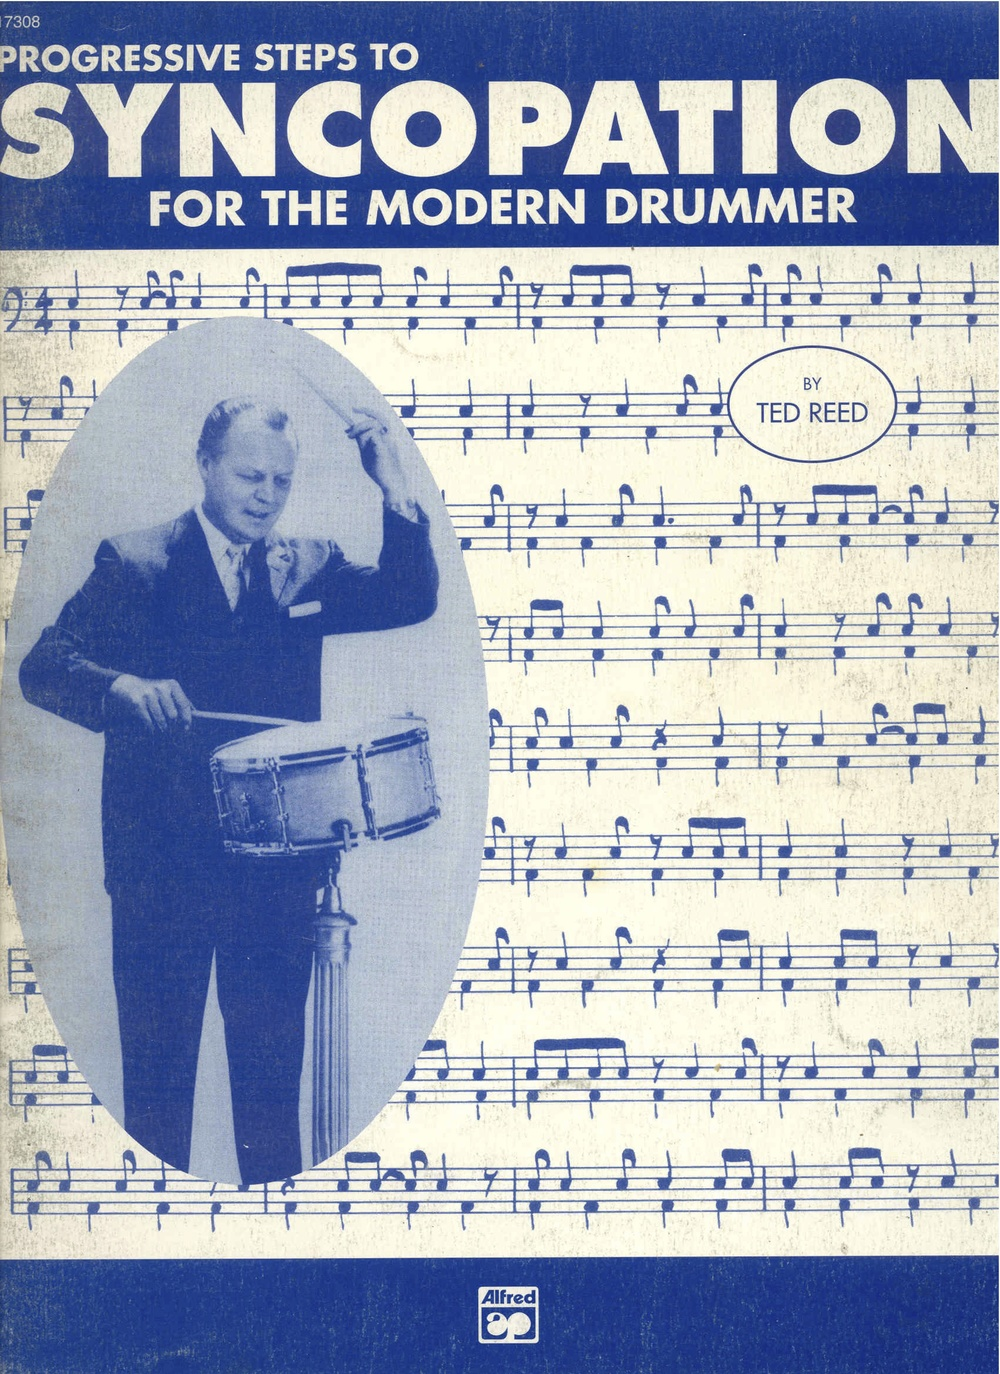 Ted Reed - Progressive Steps To Syncopation For The Modern Drummer.jpg